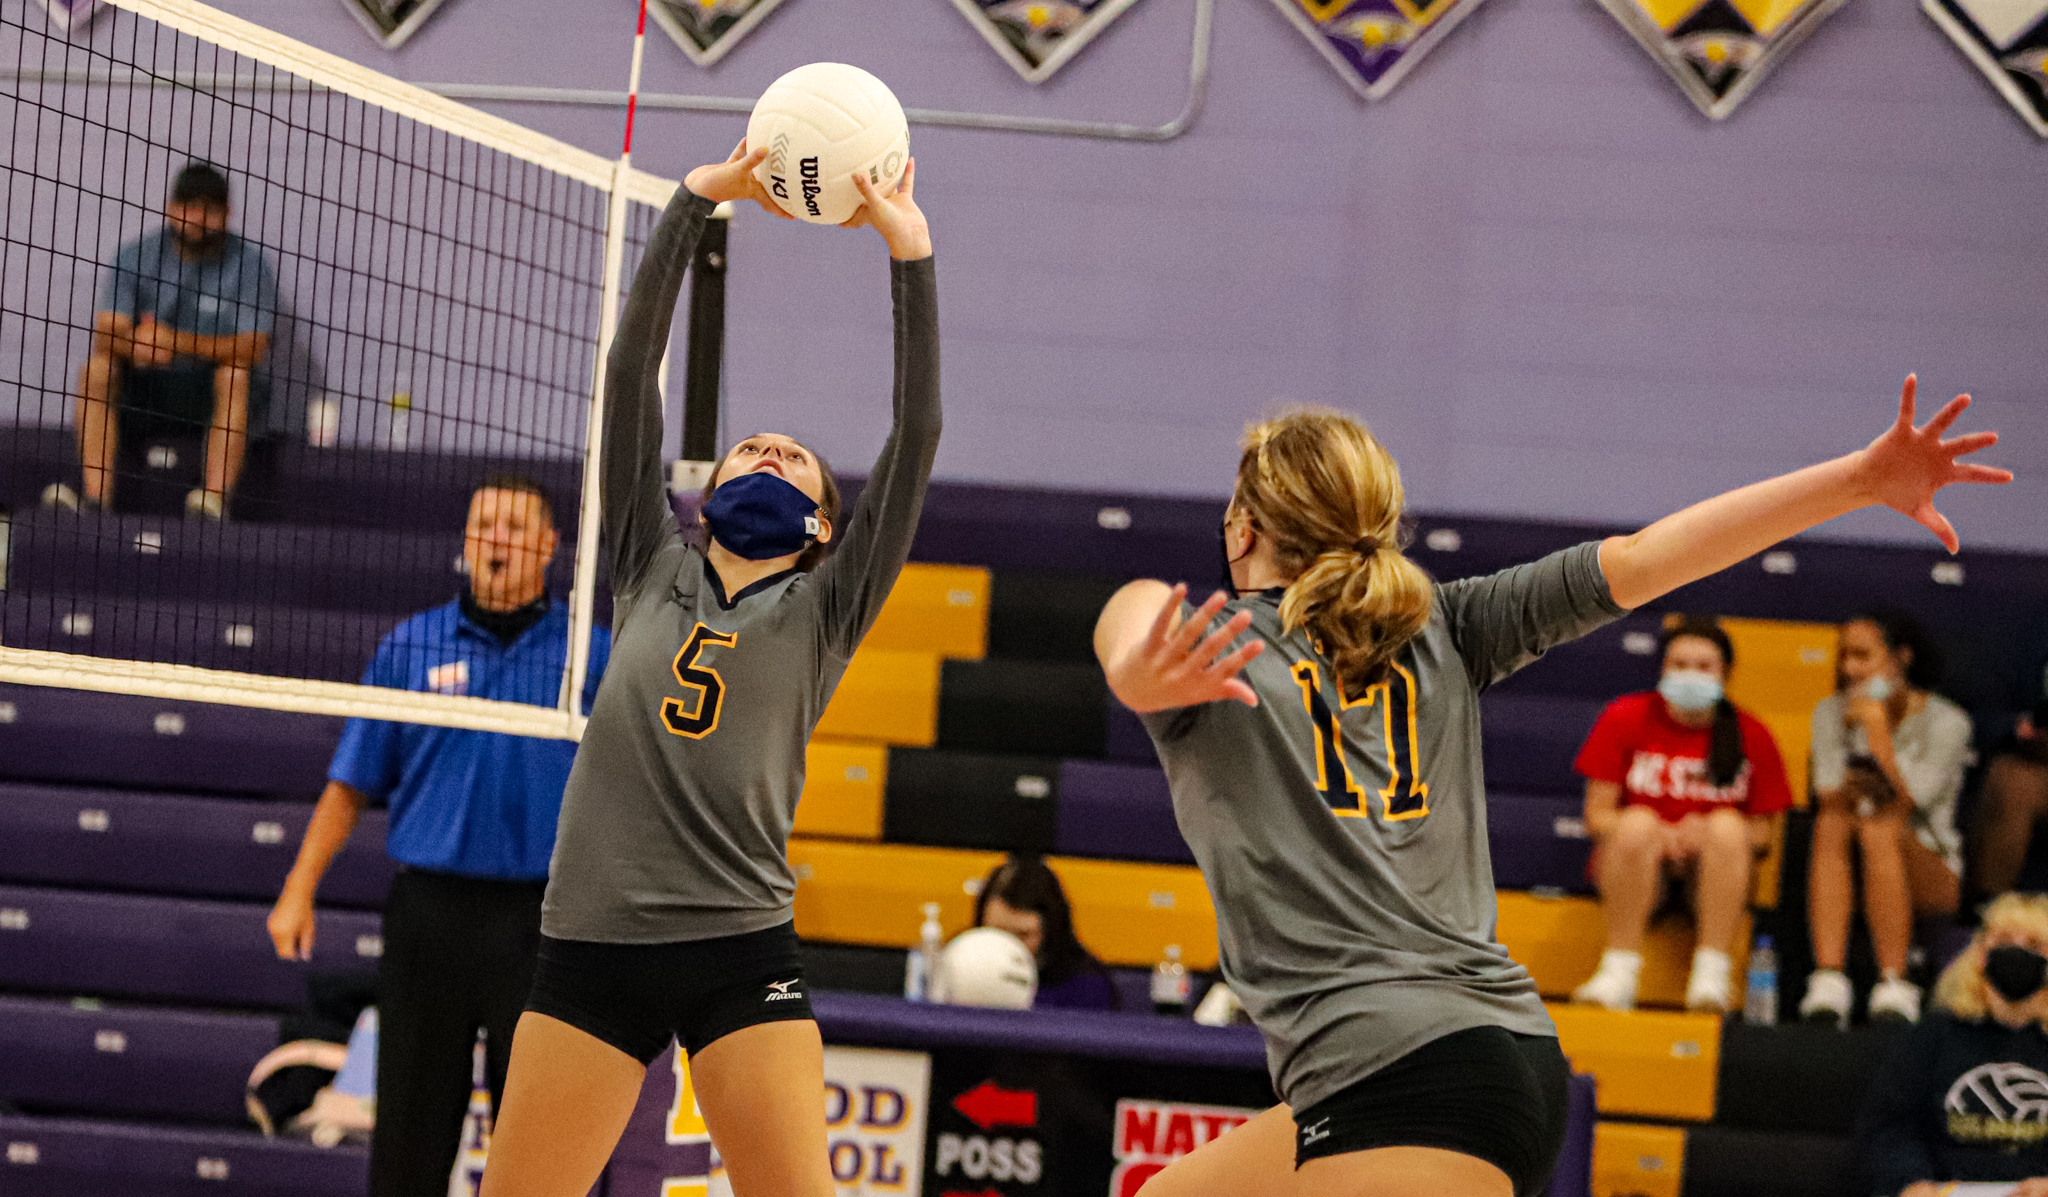 Volleyball: Goldsboro Sweeps Rosewood (PHOTO GALLERY)